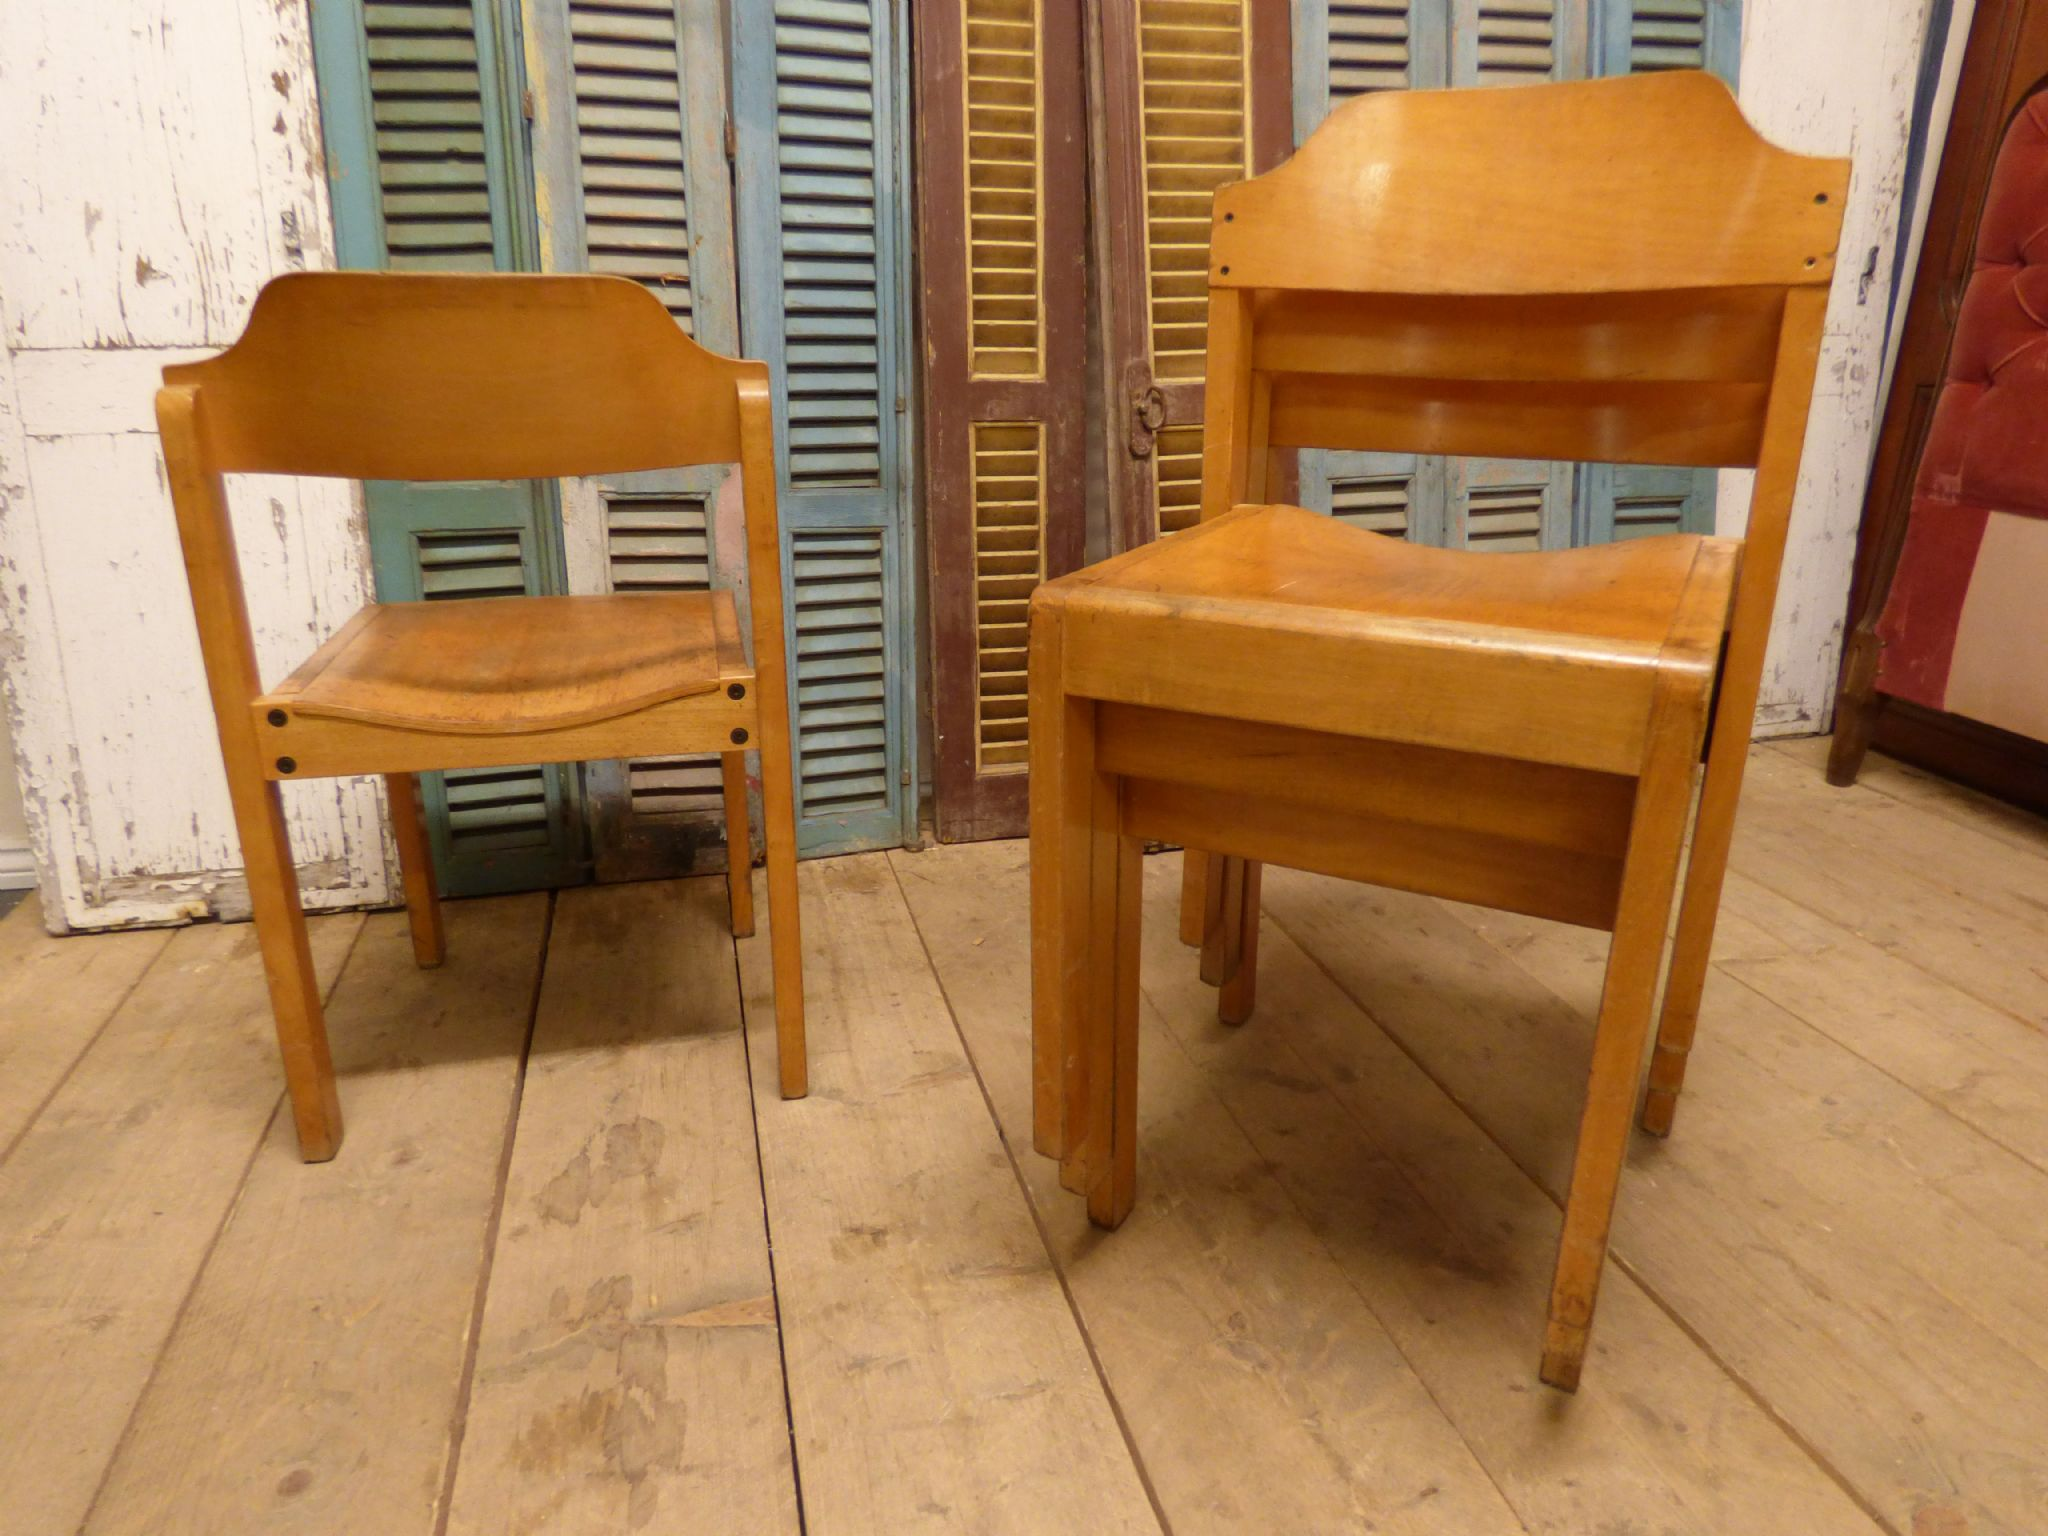 our and original chair chairs wood staffordshire church guides chapel warehouse antique victorian in school